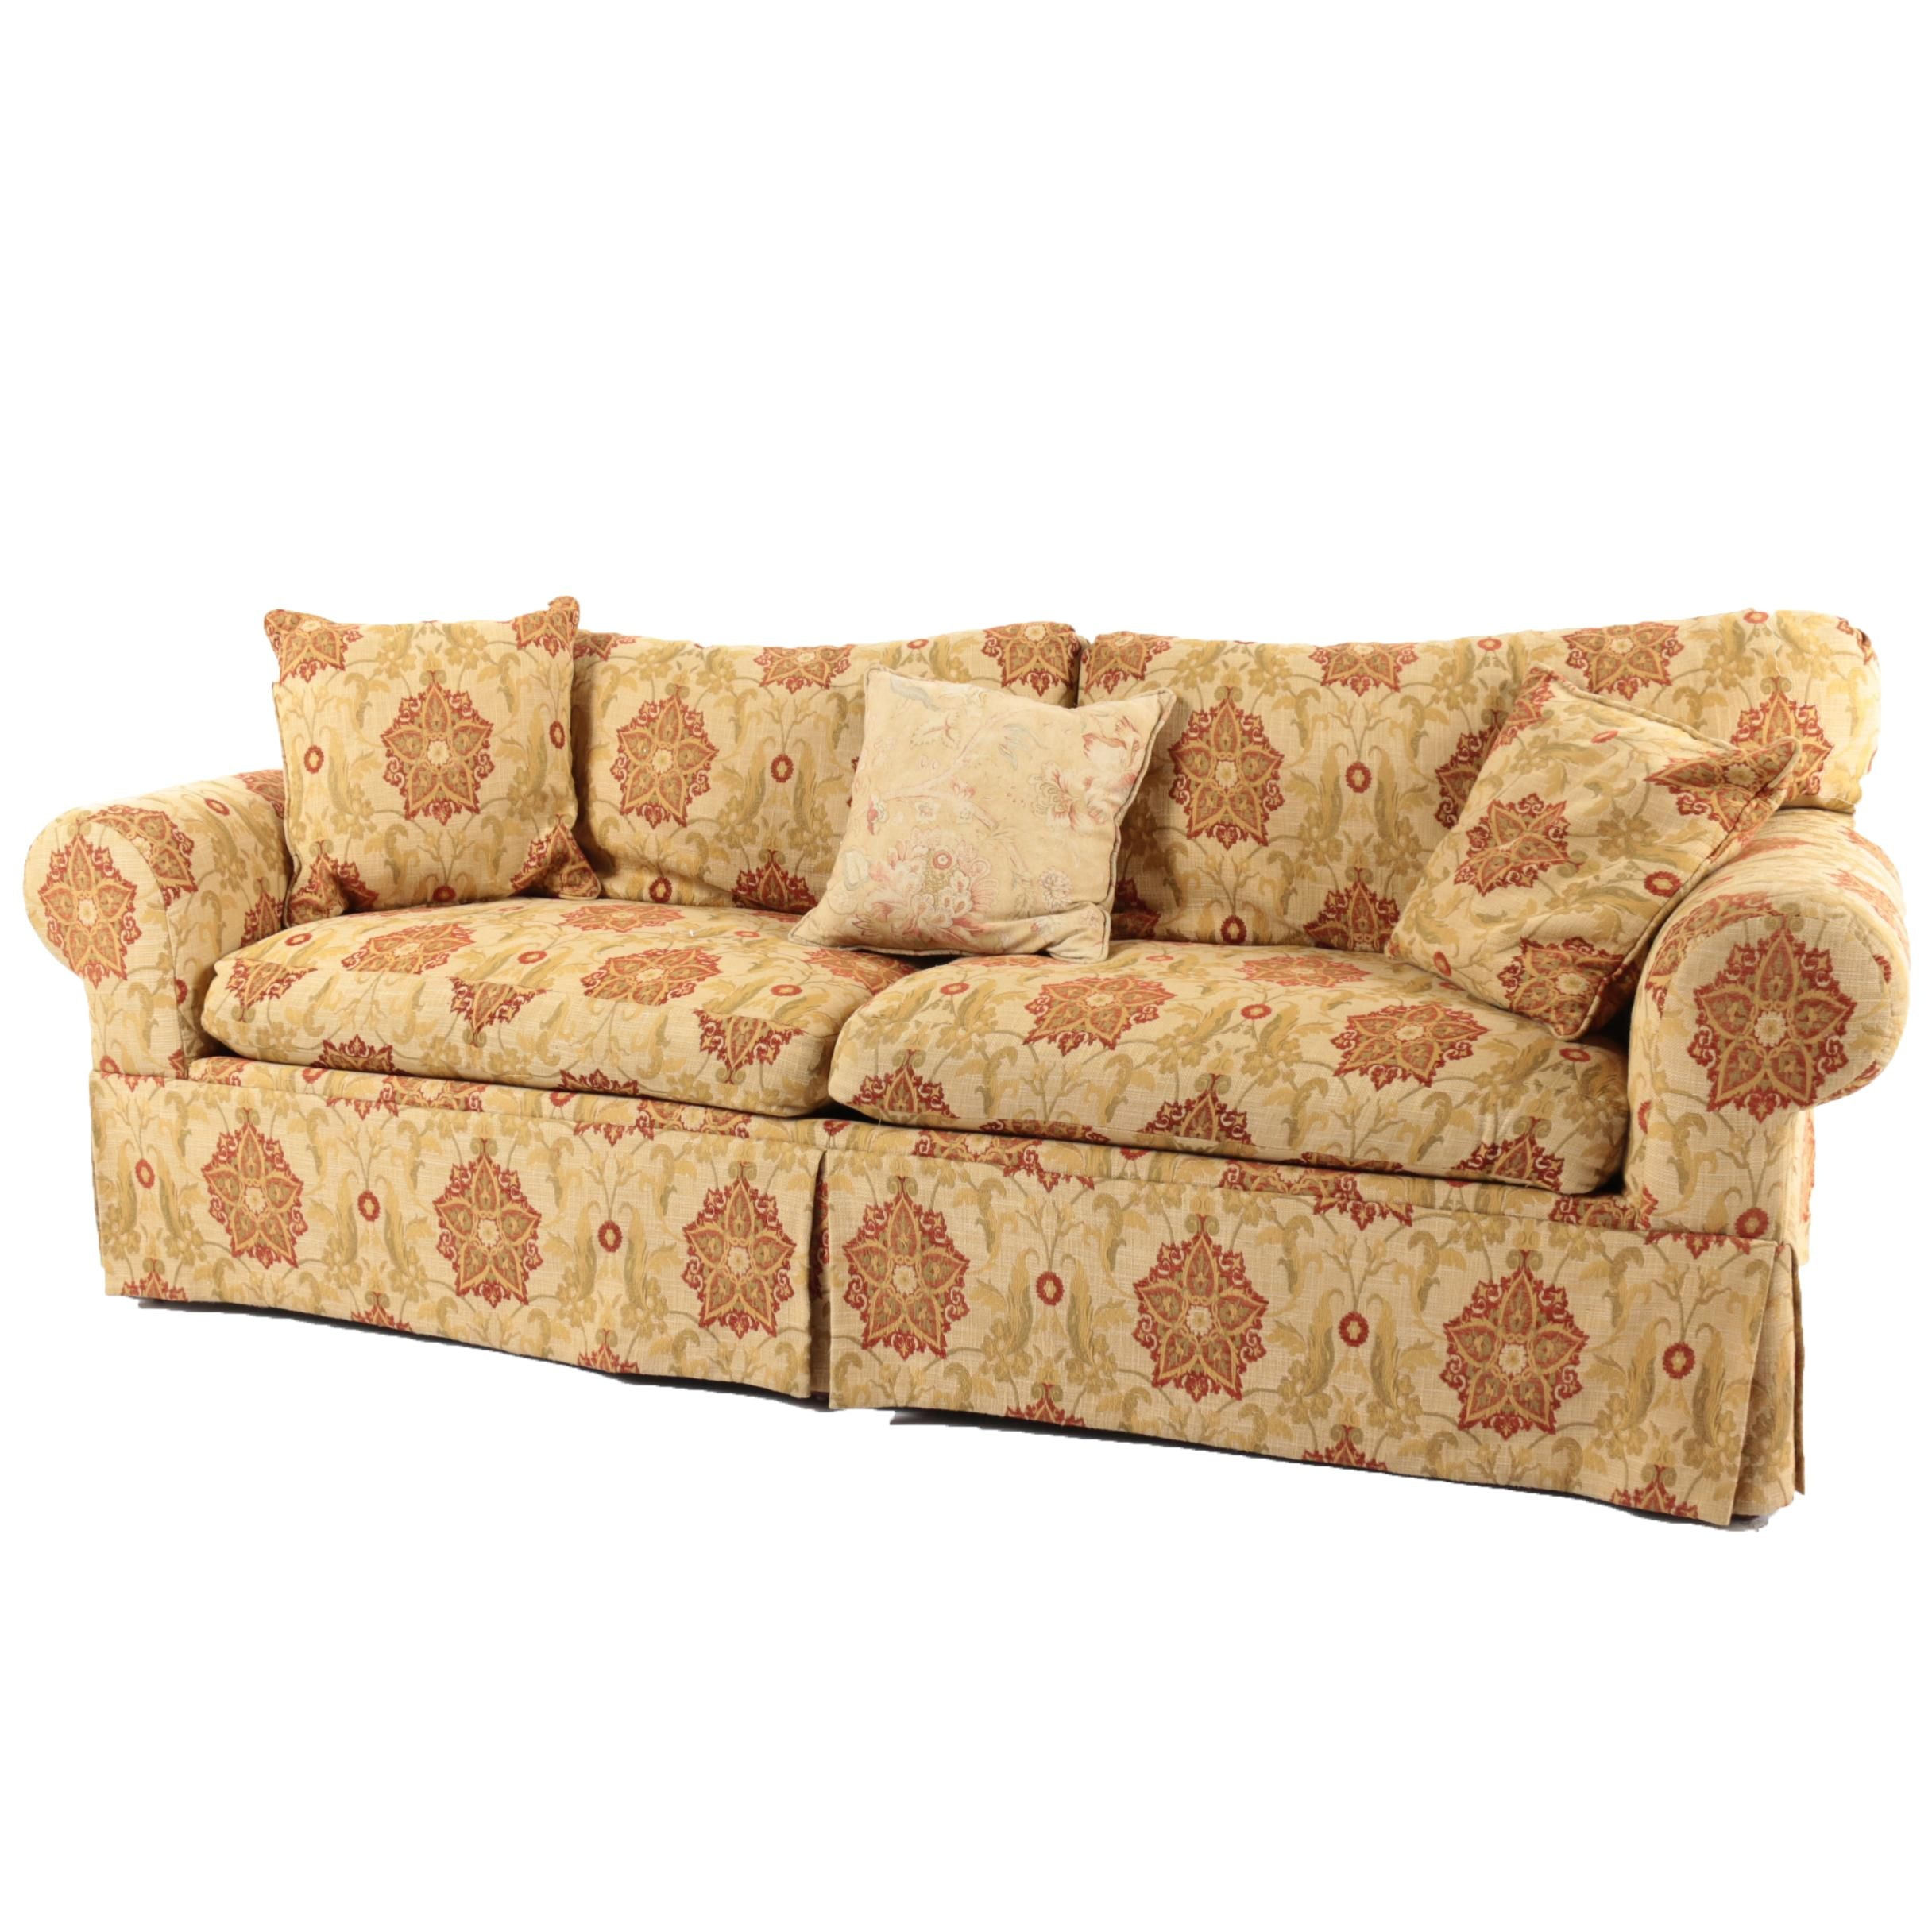 Contemporary Floral Upholstered Sofa